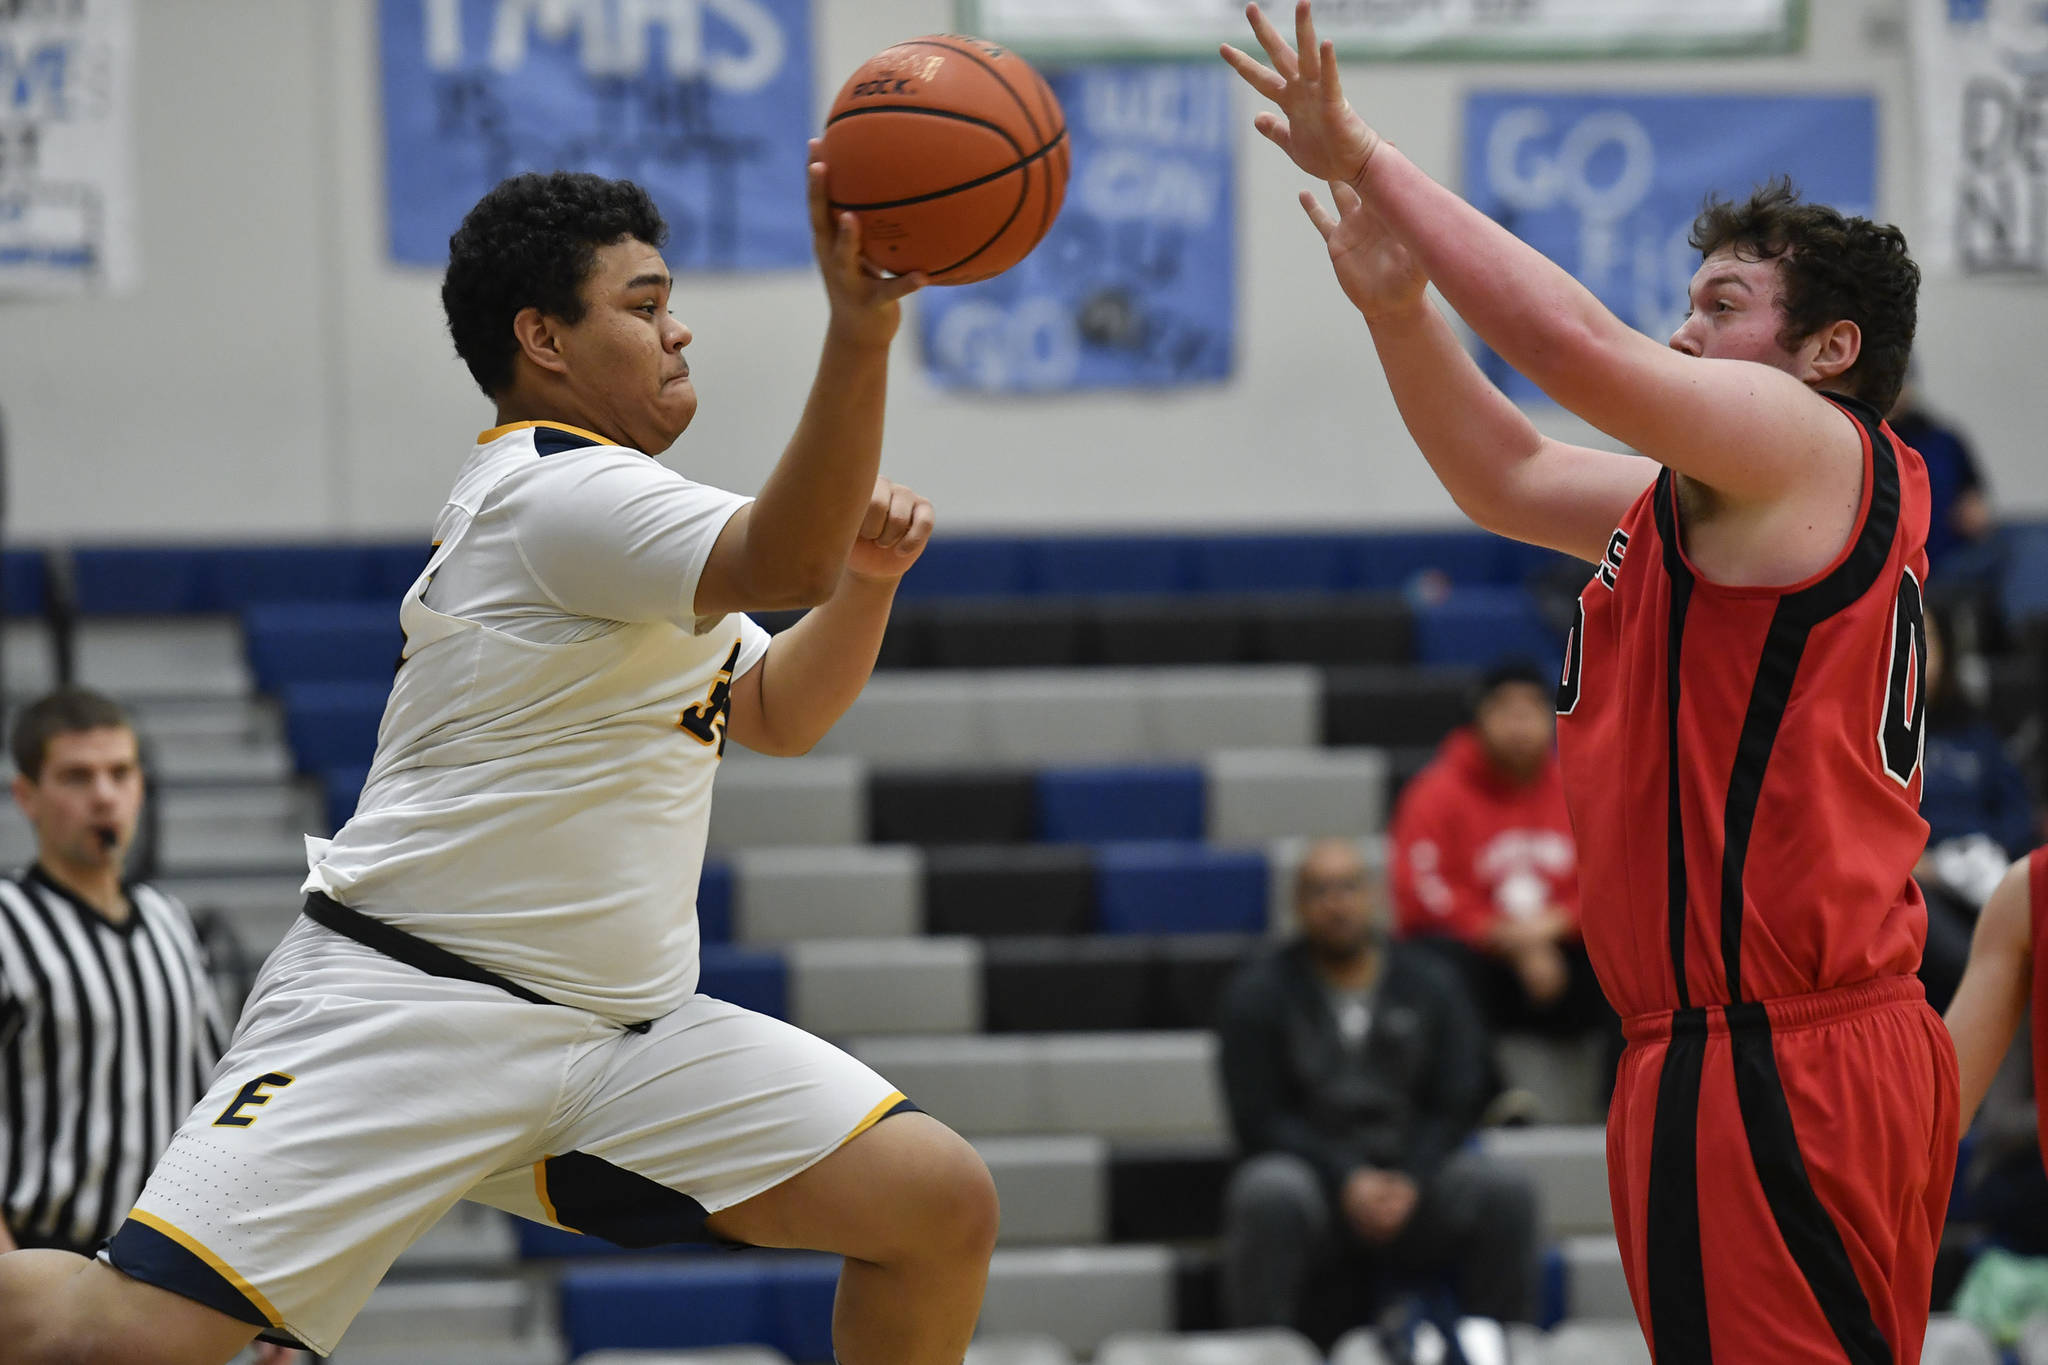 Angoon's Anthony Johnson passes against Gustavus' David Blaine at the Region V 1A Basketball Championships at Thunder Mountain High School on Thursday, Feb. 28, 2019. Angoon won 42-39. (Michael Penn | Juneau Empire)